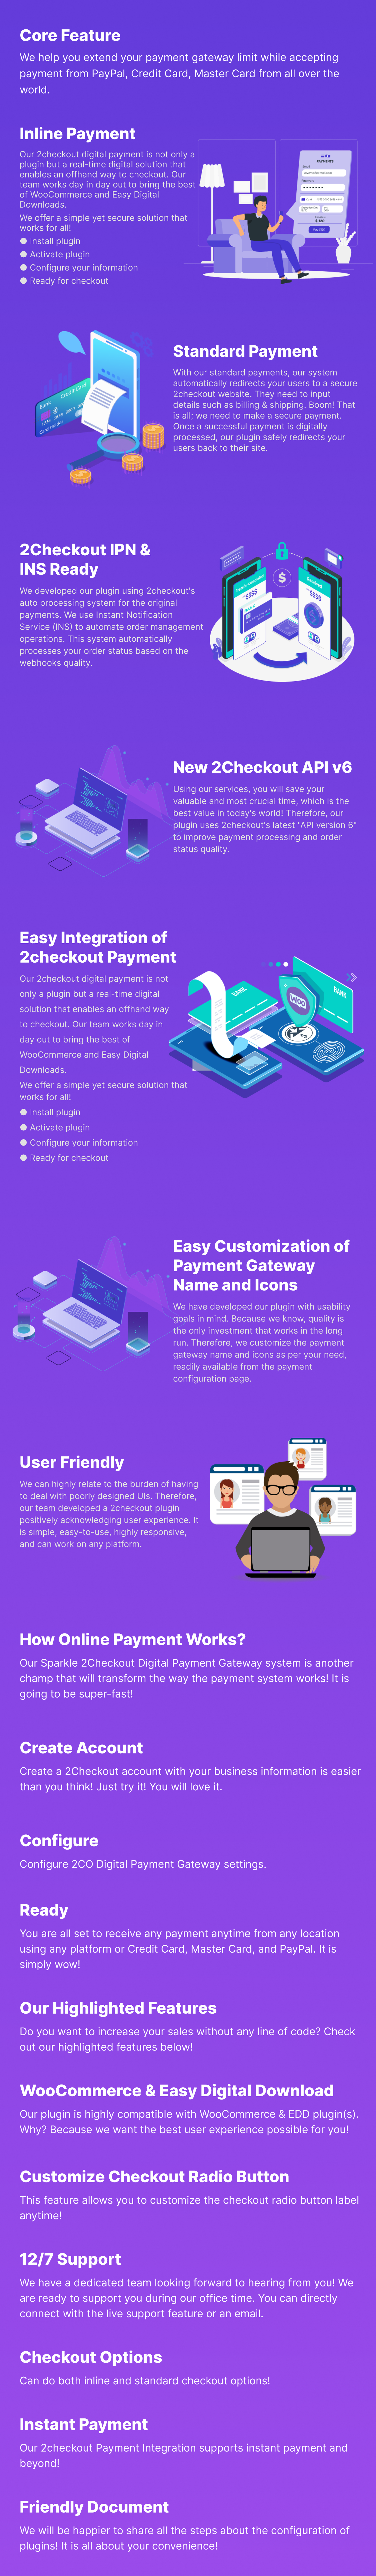 Sparkle 2Checkout Digital Payment Gateway for WooCommerce & Easy Digital Download - 2